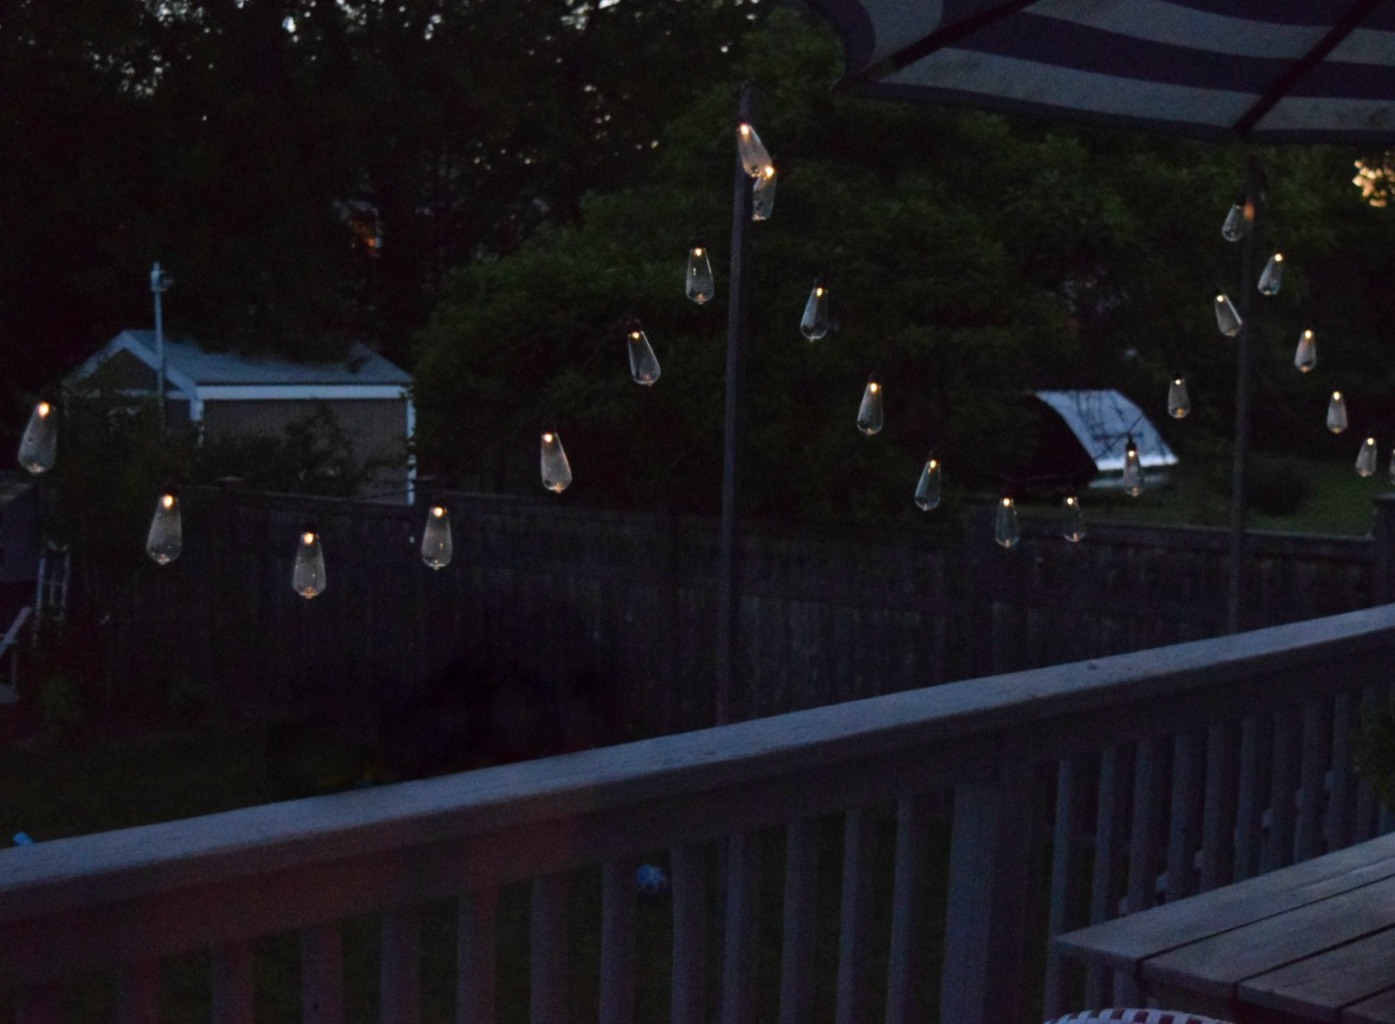 Patio String Lights  Solar Powered And DIY Wood Poles